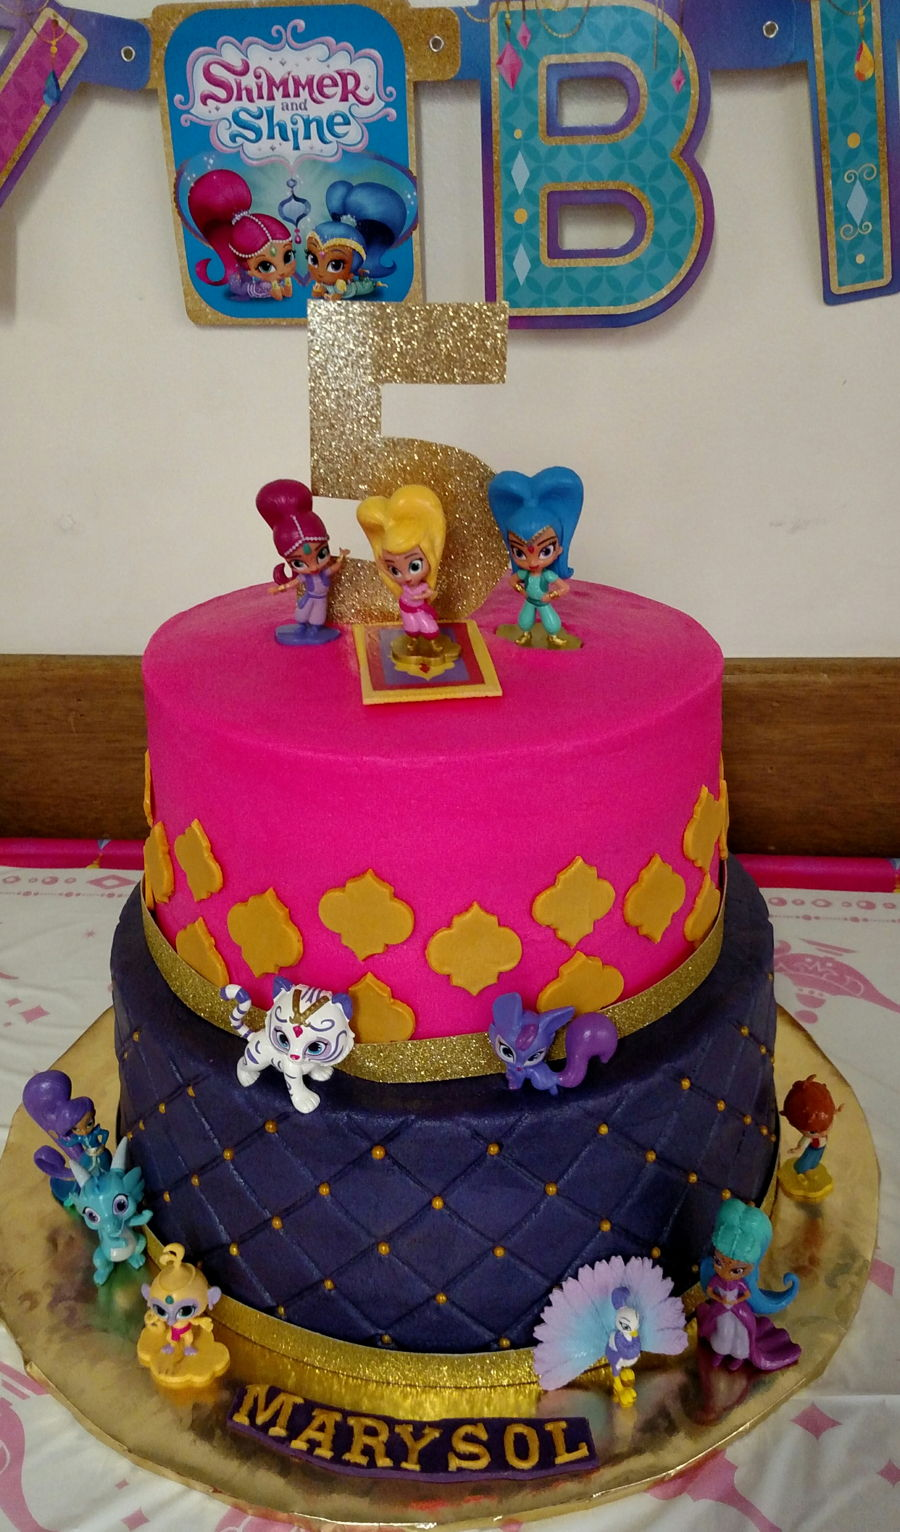 Shimmer N Shine 5th Birthday Cakecentral Com